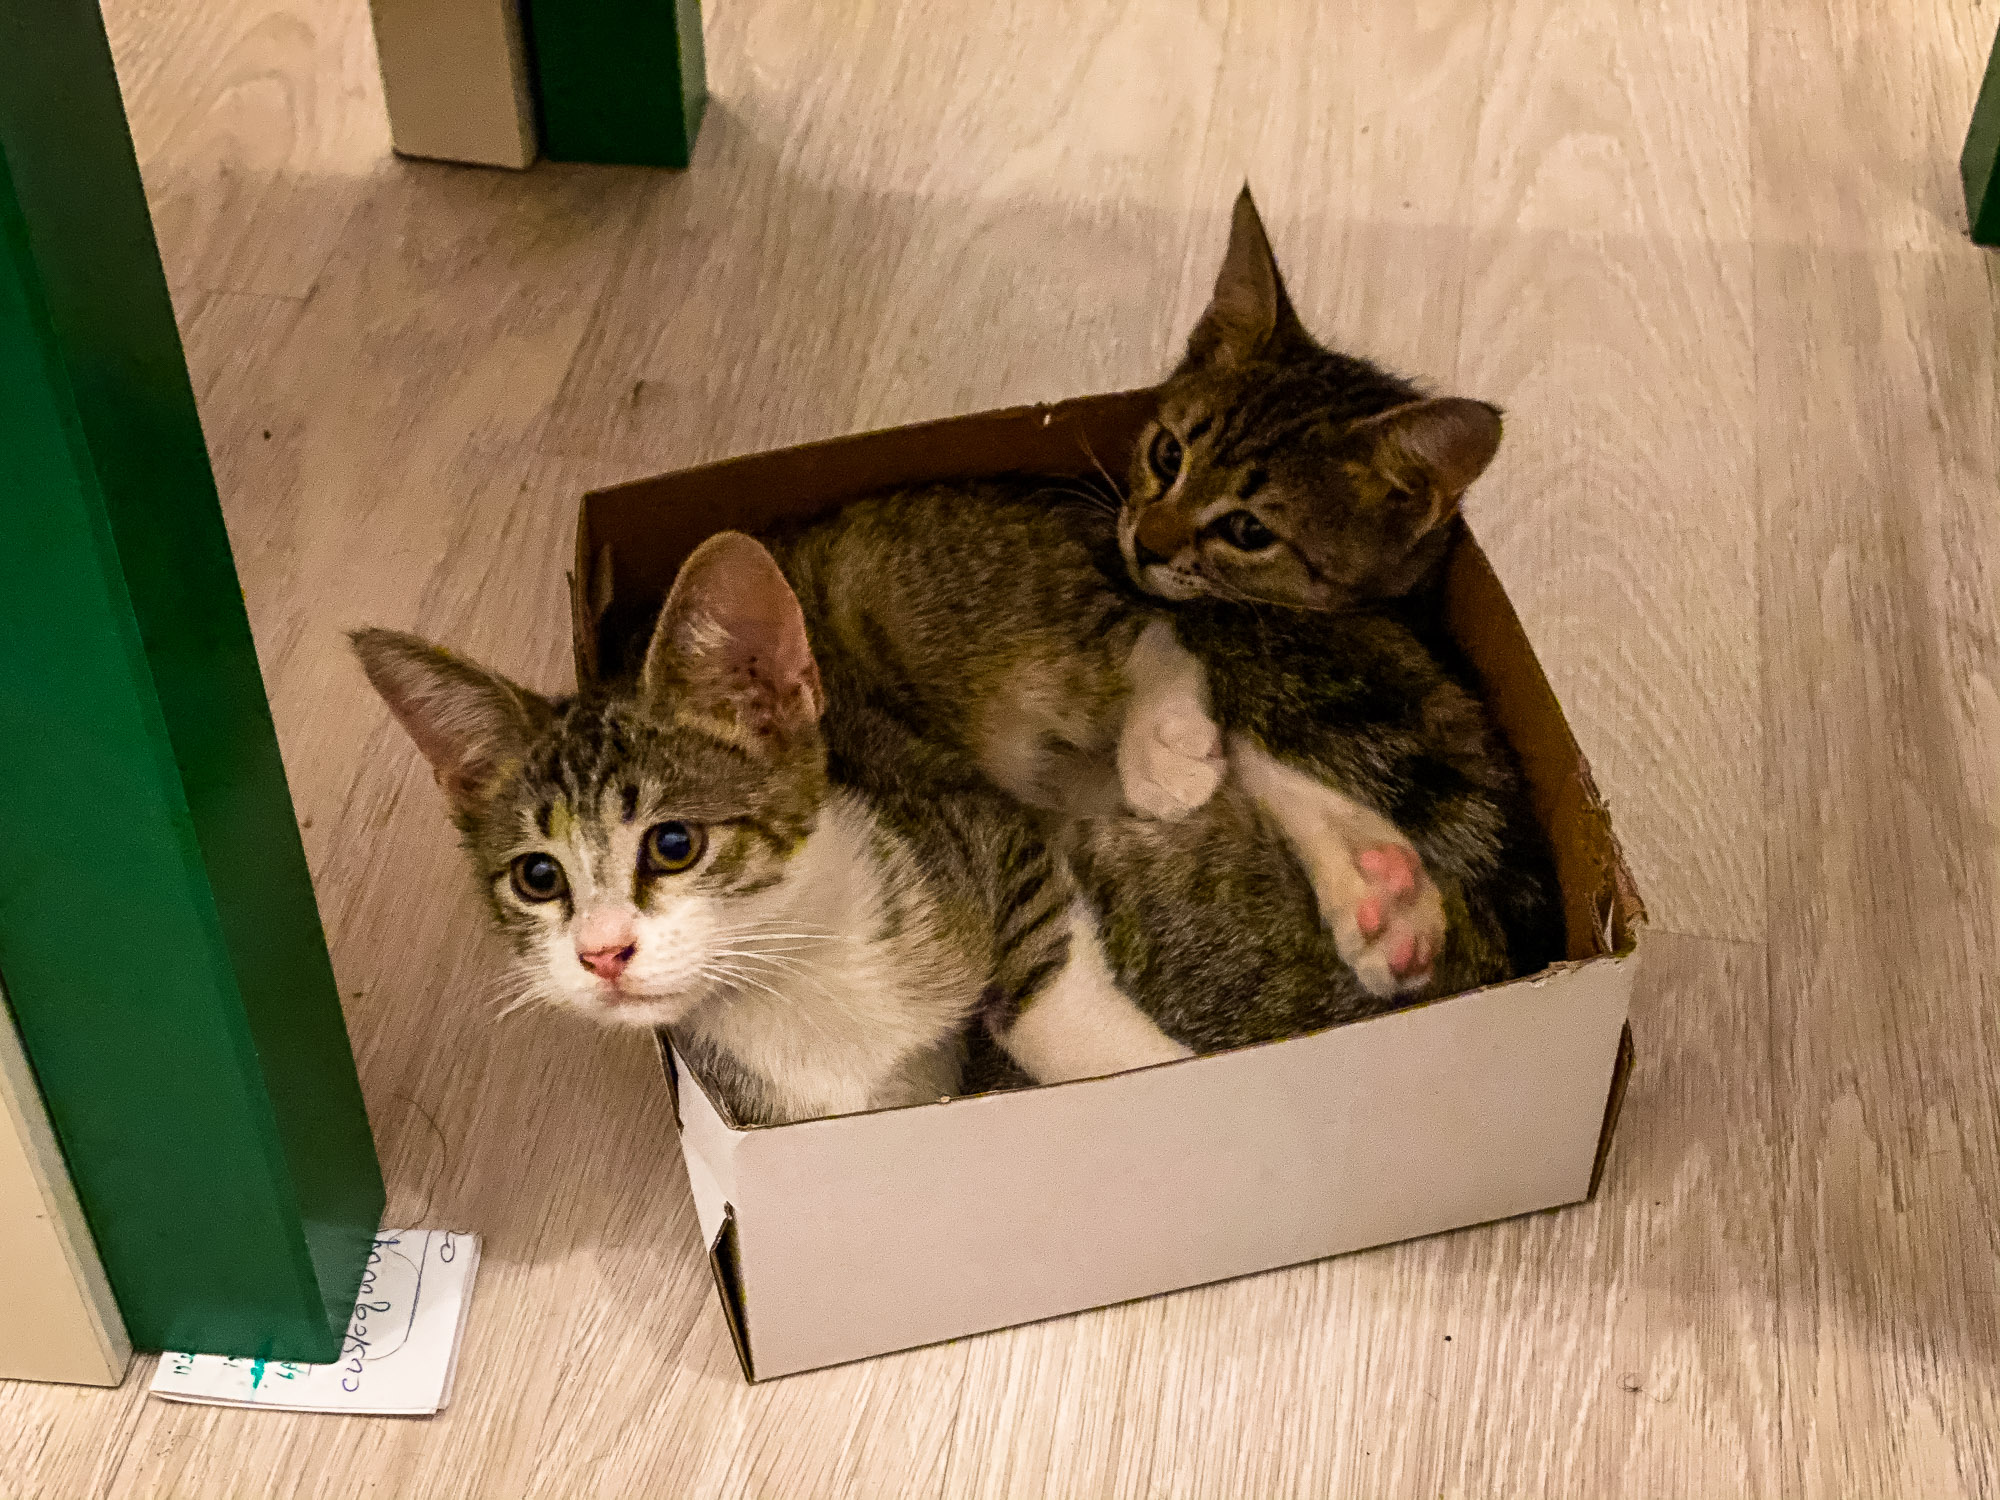 Coco and Toto in a box